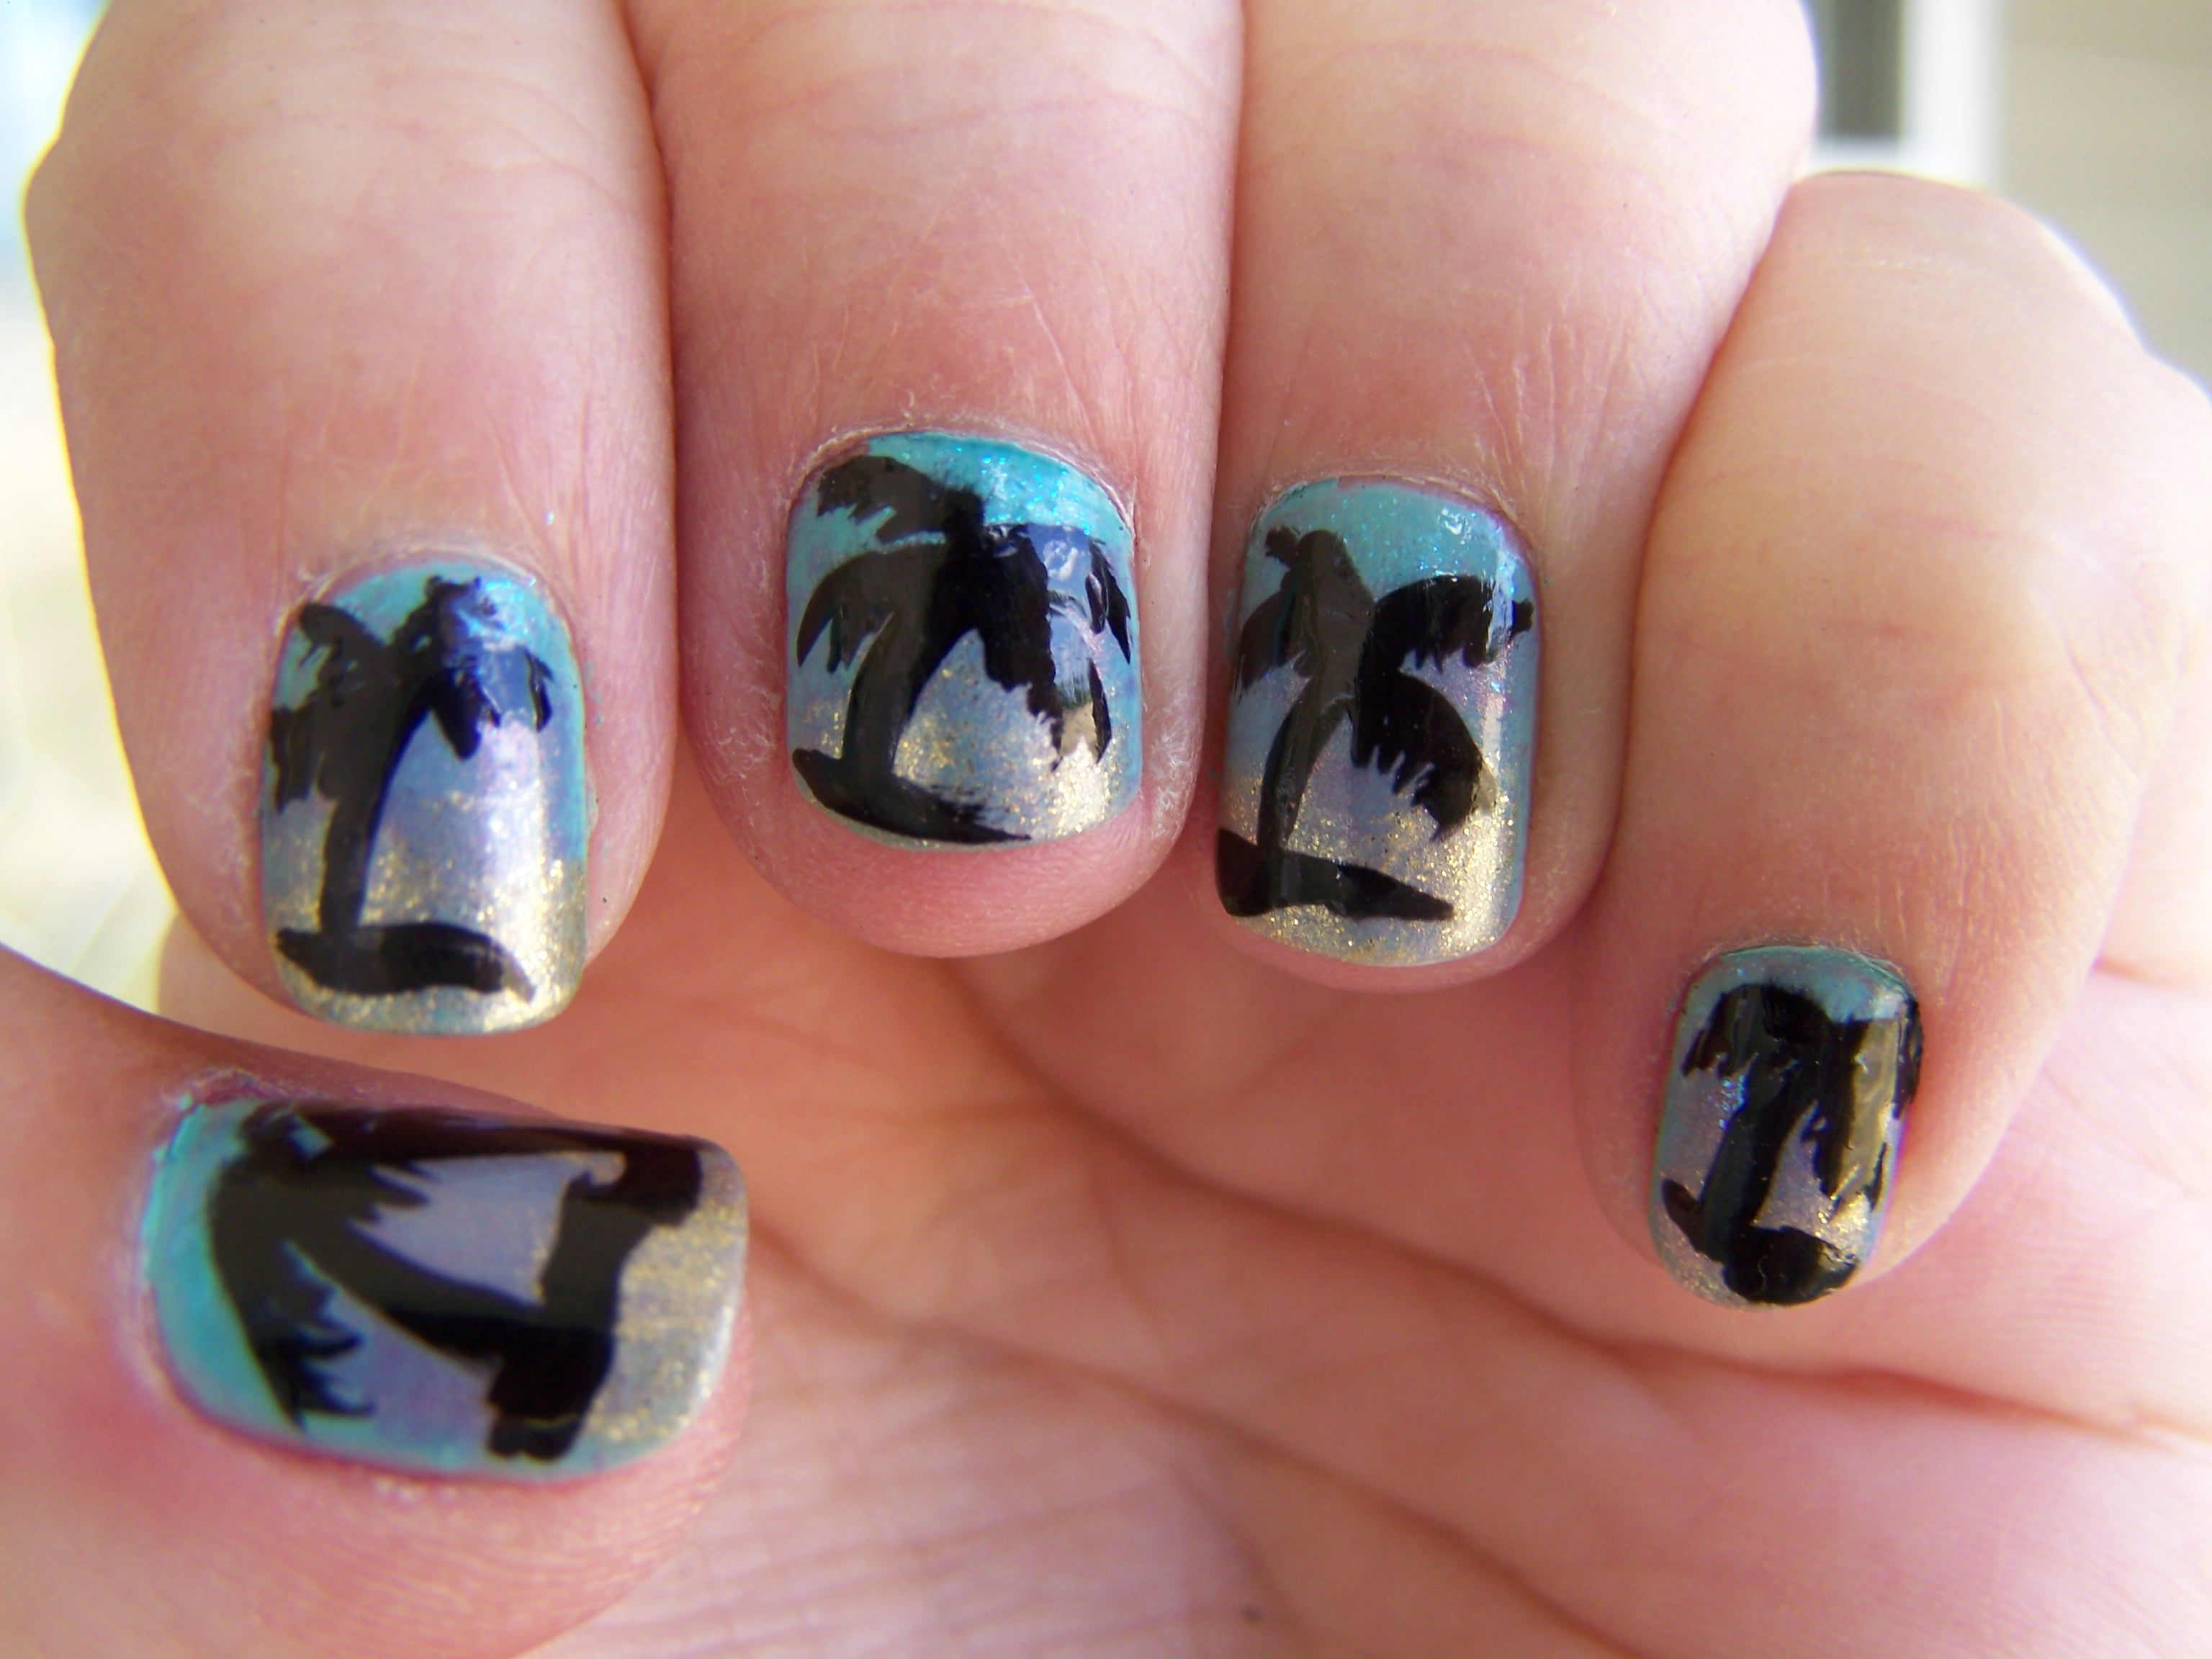 My palm tree nails | Oh, the joy of nail art! | Pinterest | Palm ...